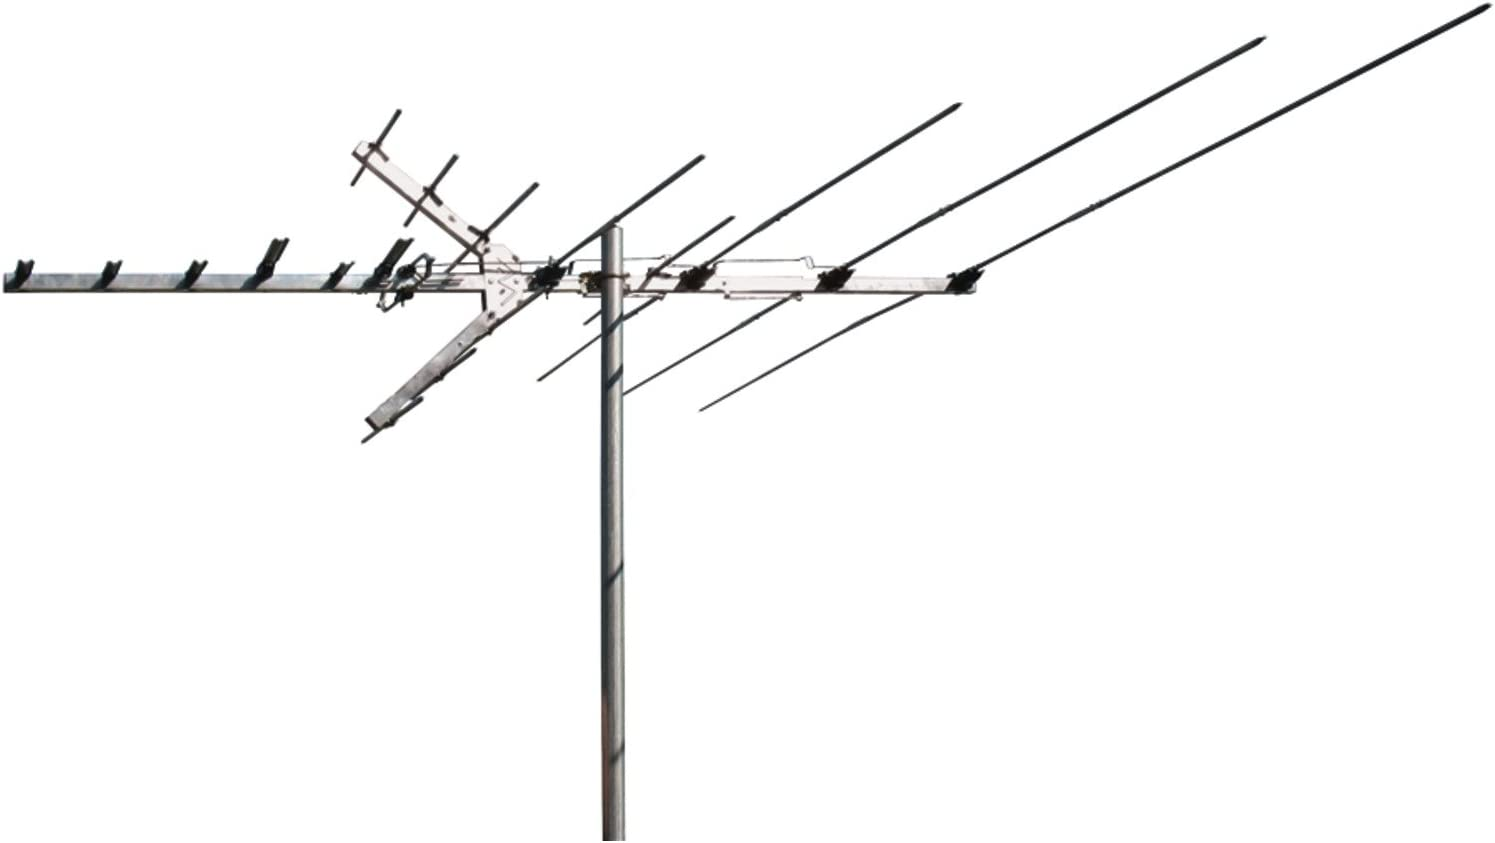 RCA Outdoor Long-Range Hdtv Yagi Antenna with 100+ Mile Range